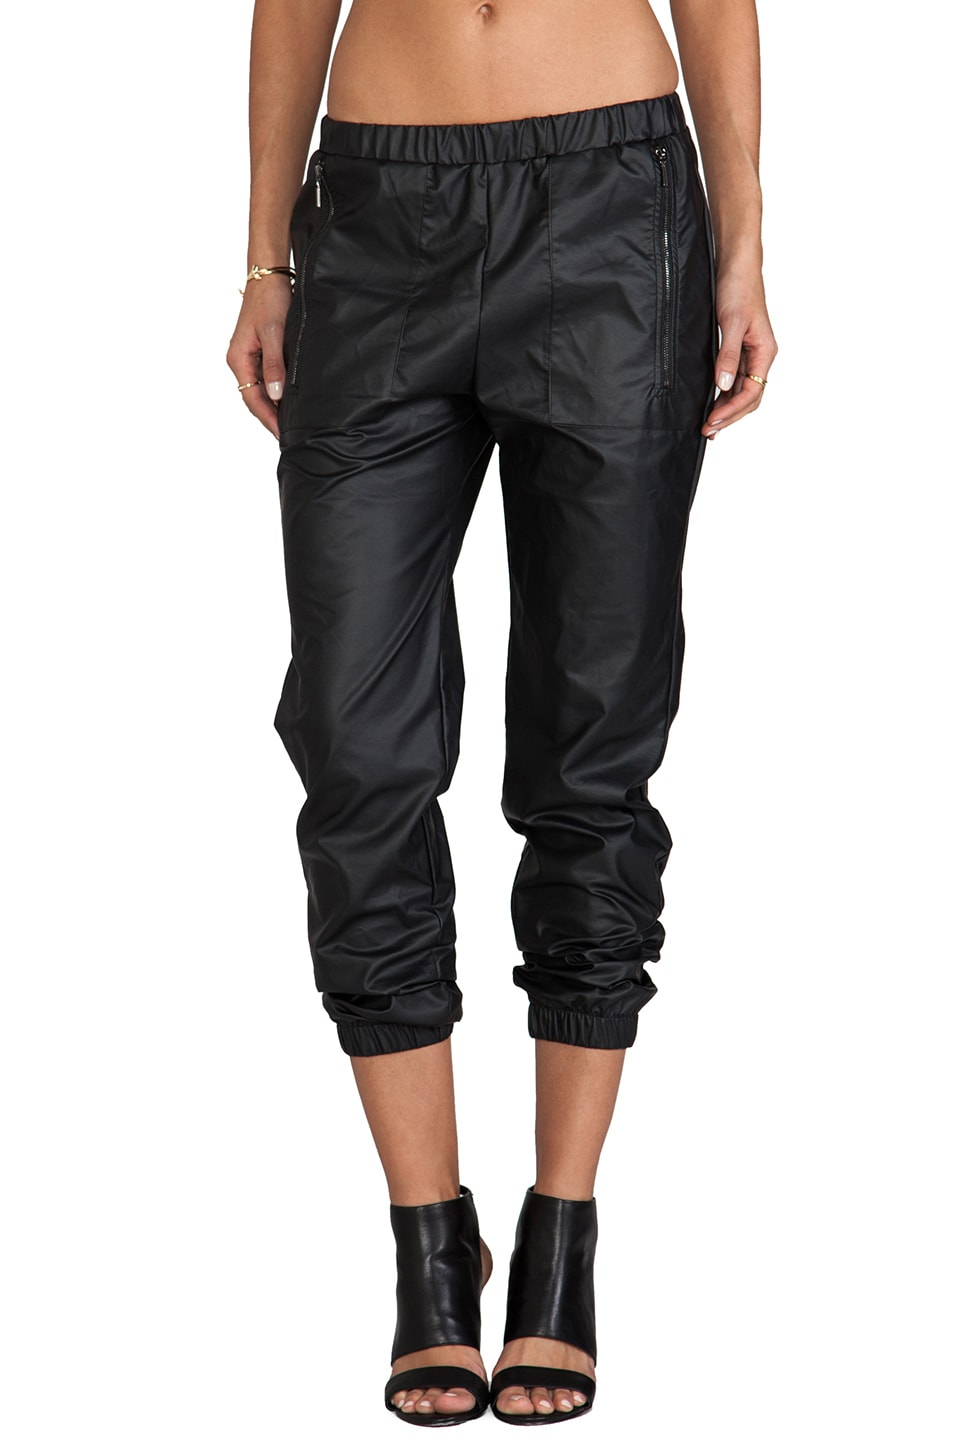 Backstage Phoenix Faux Leather Pant in Black